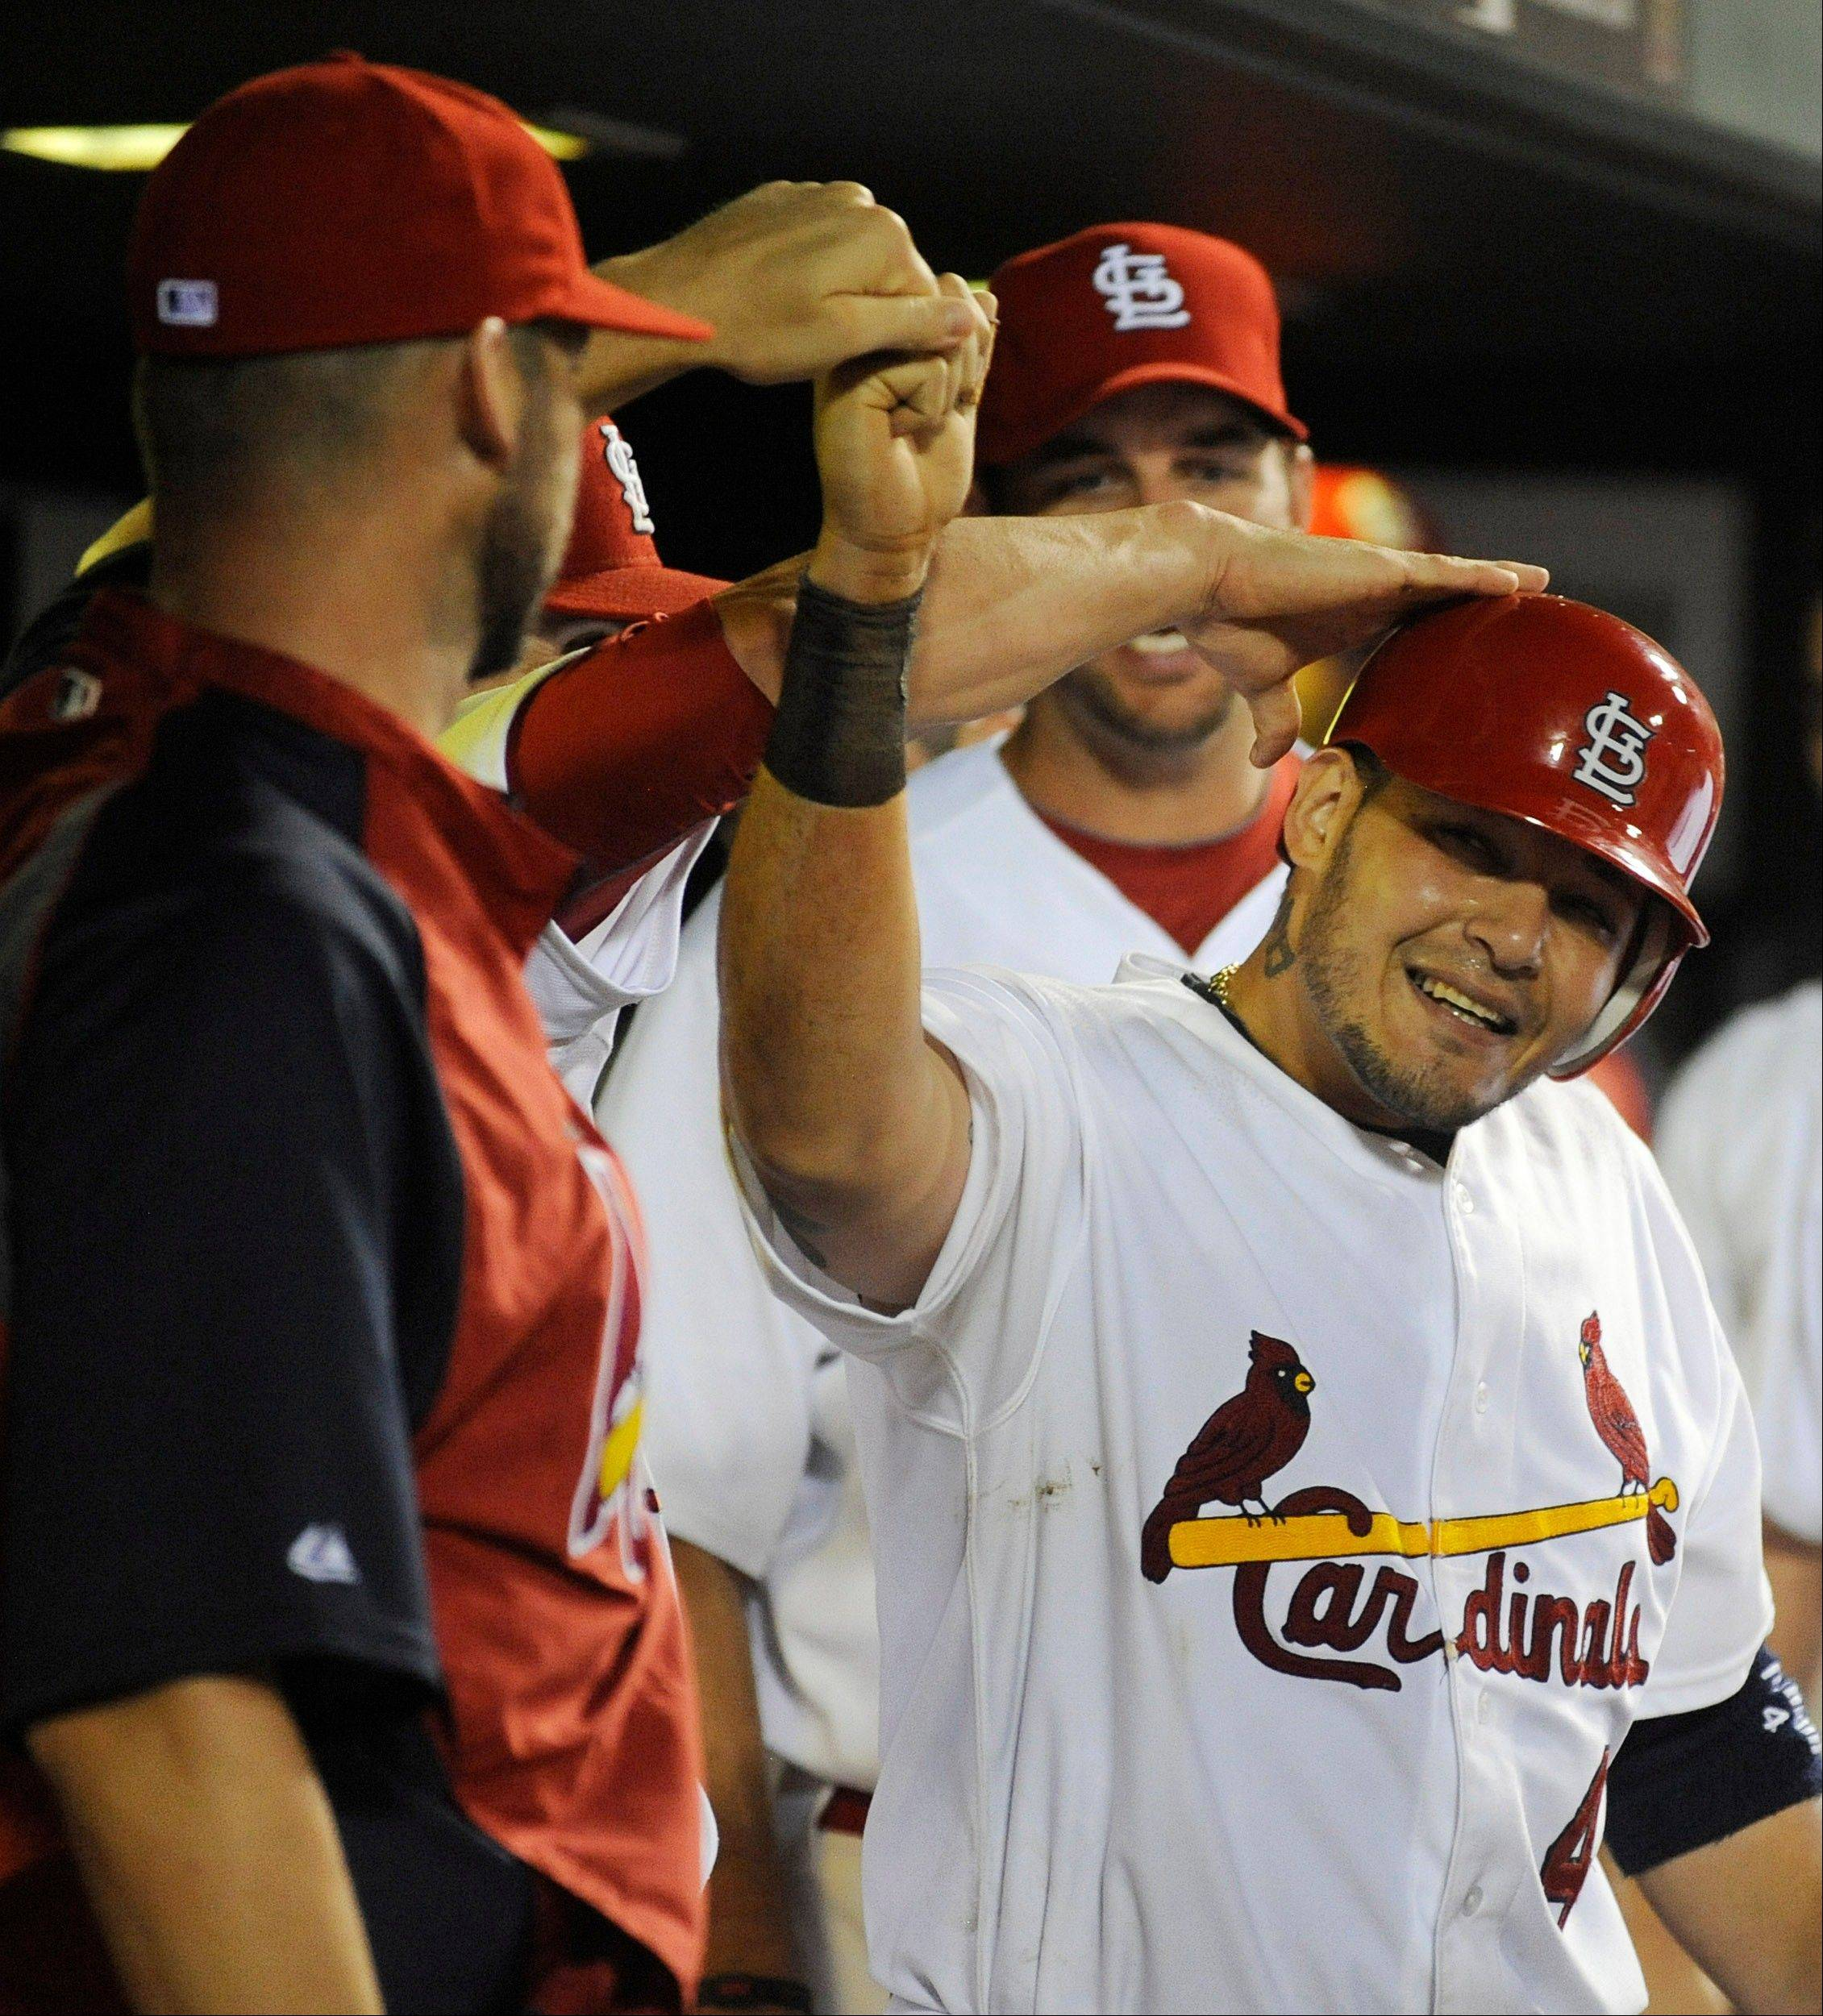 The Cardinals' Yadier Molina is congratulated by teammates after scoring against the Milwaukee Brewers in the sixth inning Friday in St. Louis.